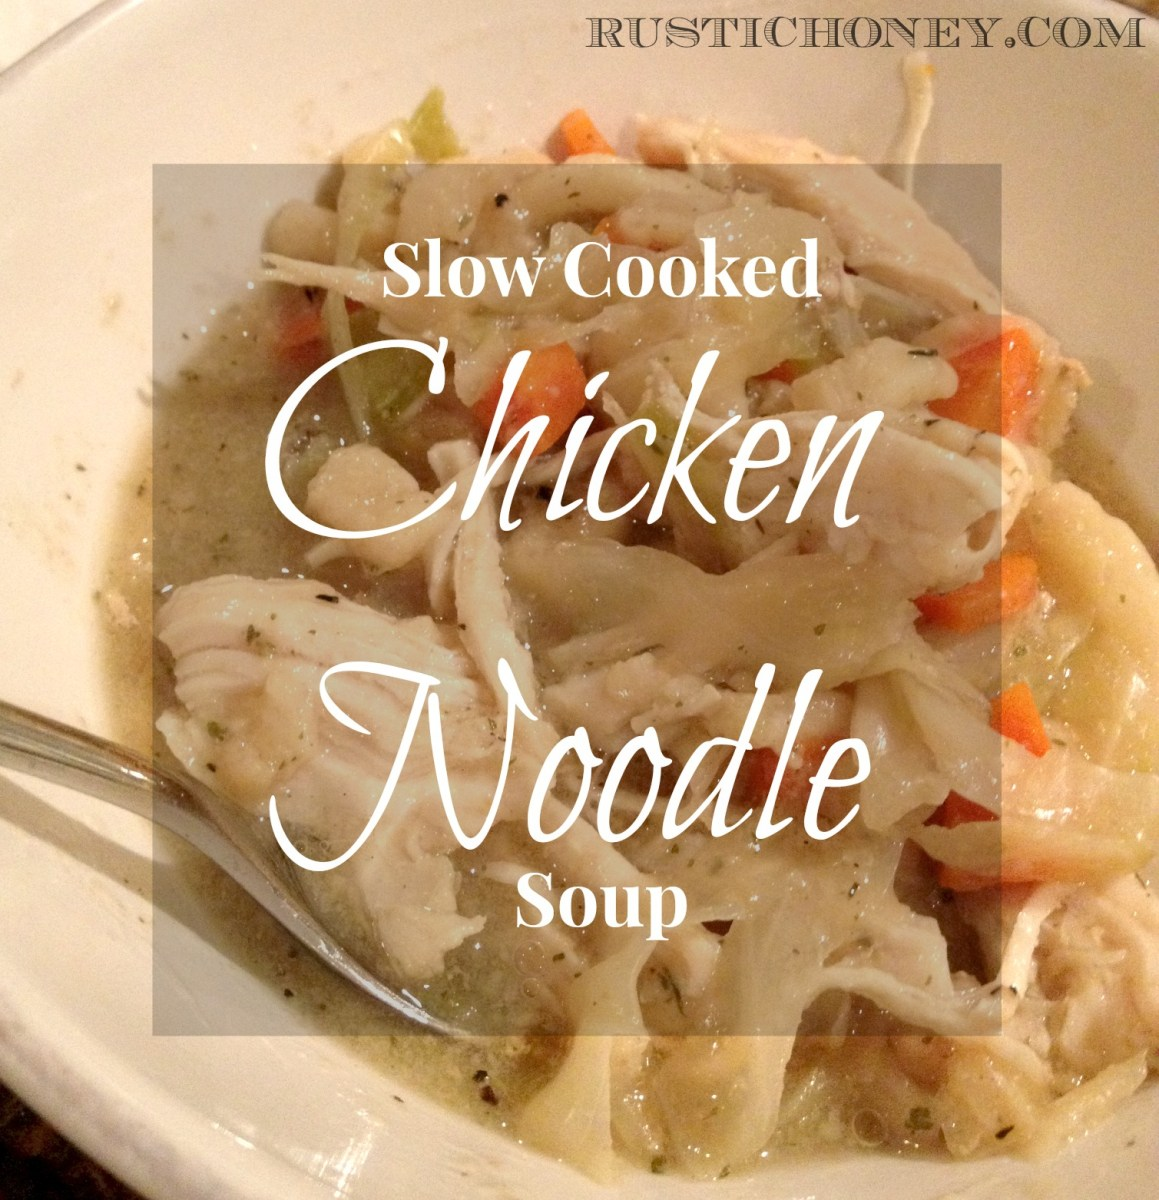 Slow Cooked Homestyle Chicken Noodle Soup